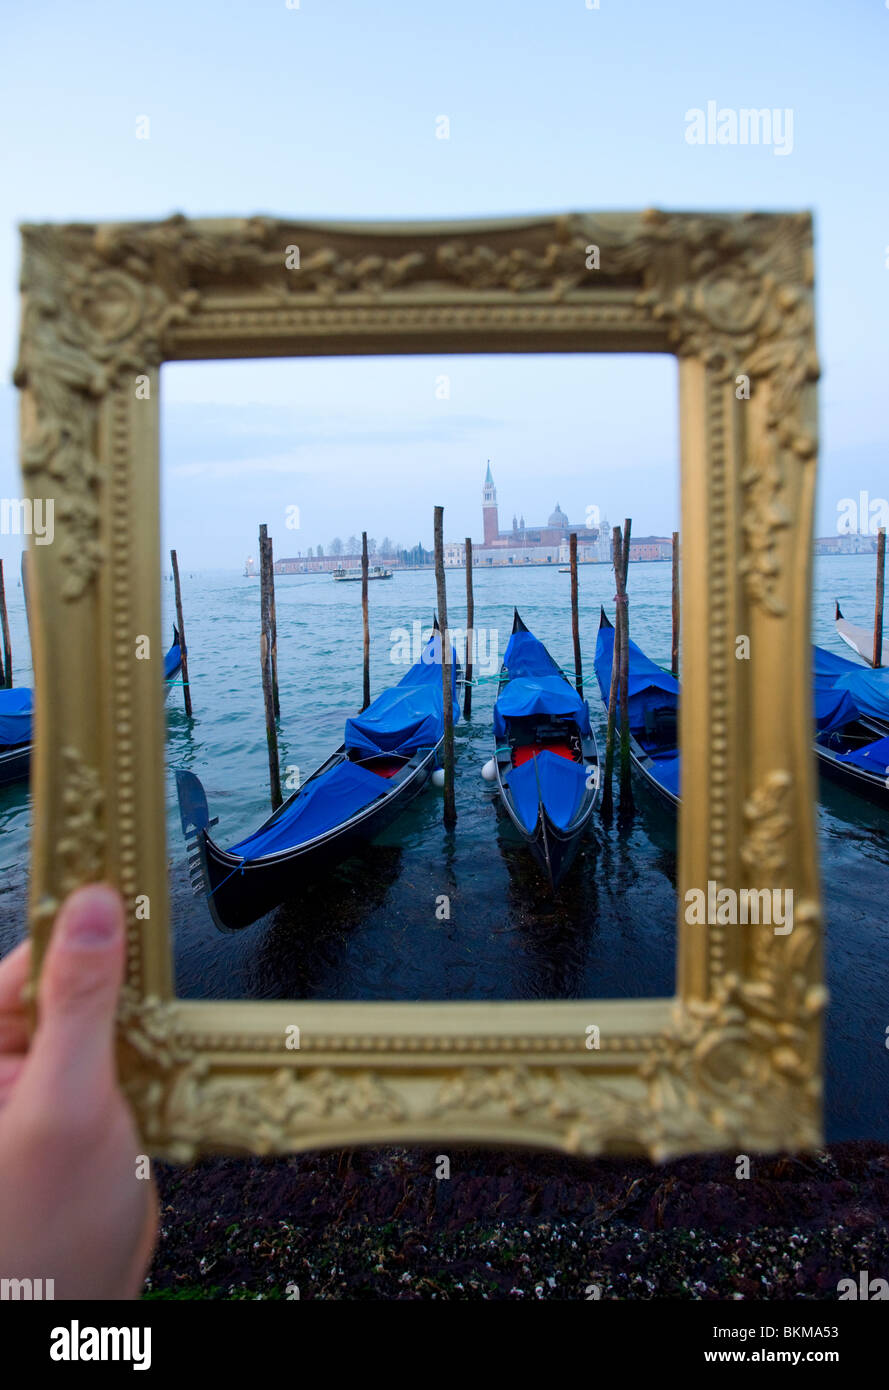 Grand Canal and gondolas at dawn framed within picture frame in Venice Italy - Stock Image